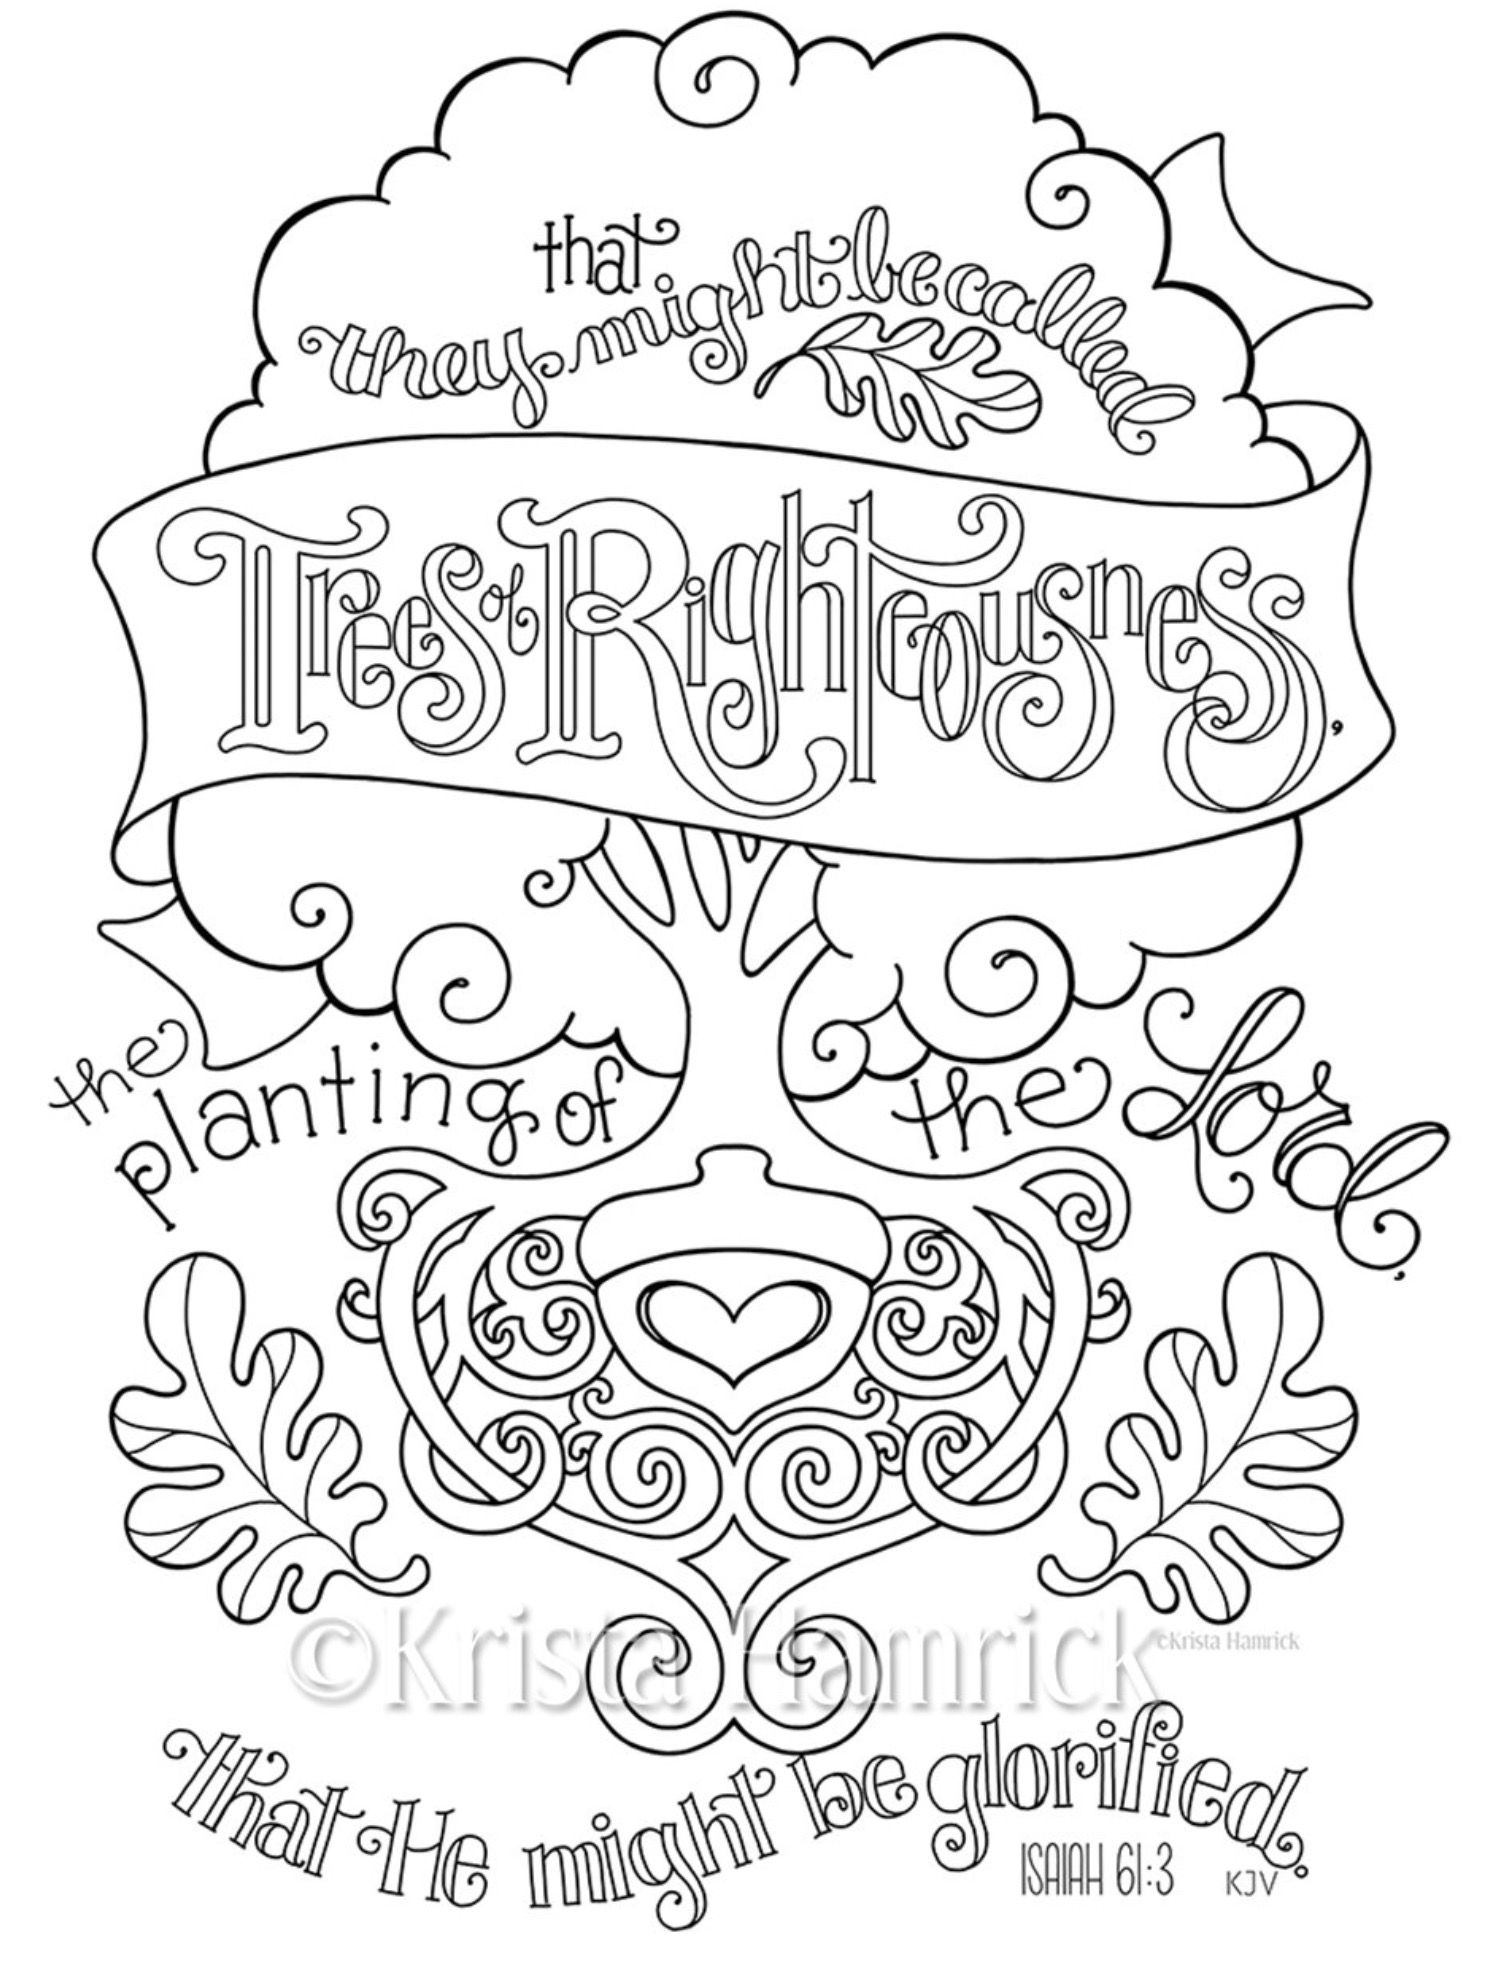 Pin By Debra Nooth On Bible Coloring Pages Bible Verse Coloring